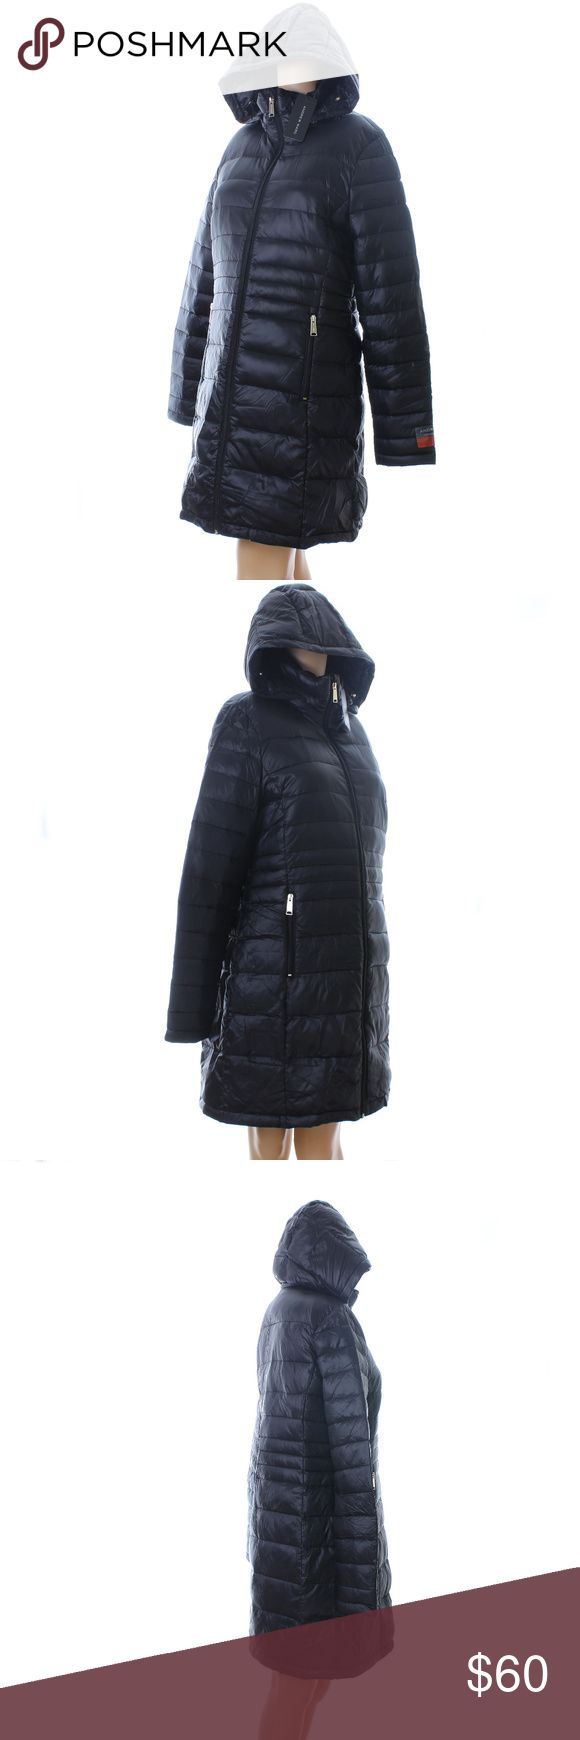 Andrew Marc Quilted Coat ✂️REDUCED✂️ Andrew Marc Quilted Coat.  Light Weight Premium Down.  Detachable hood with hood bag.  New with tag Andrew Marc Jackets & Coats